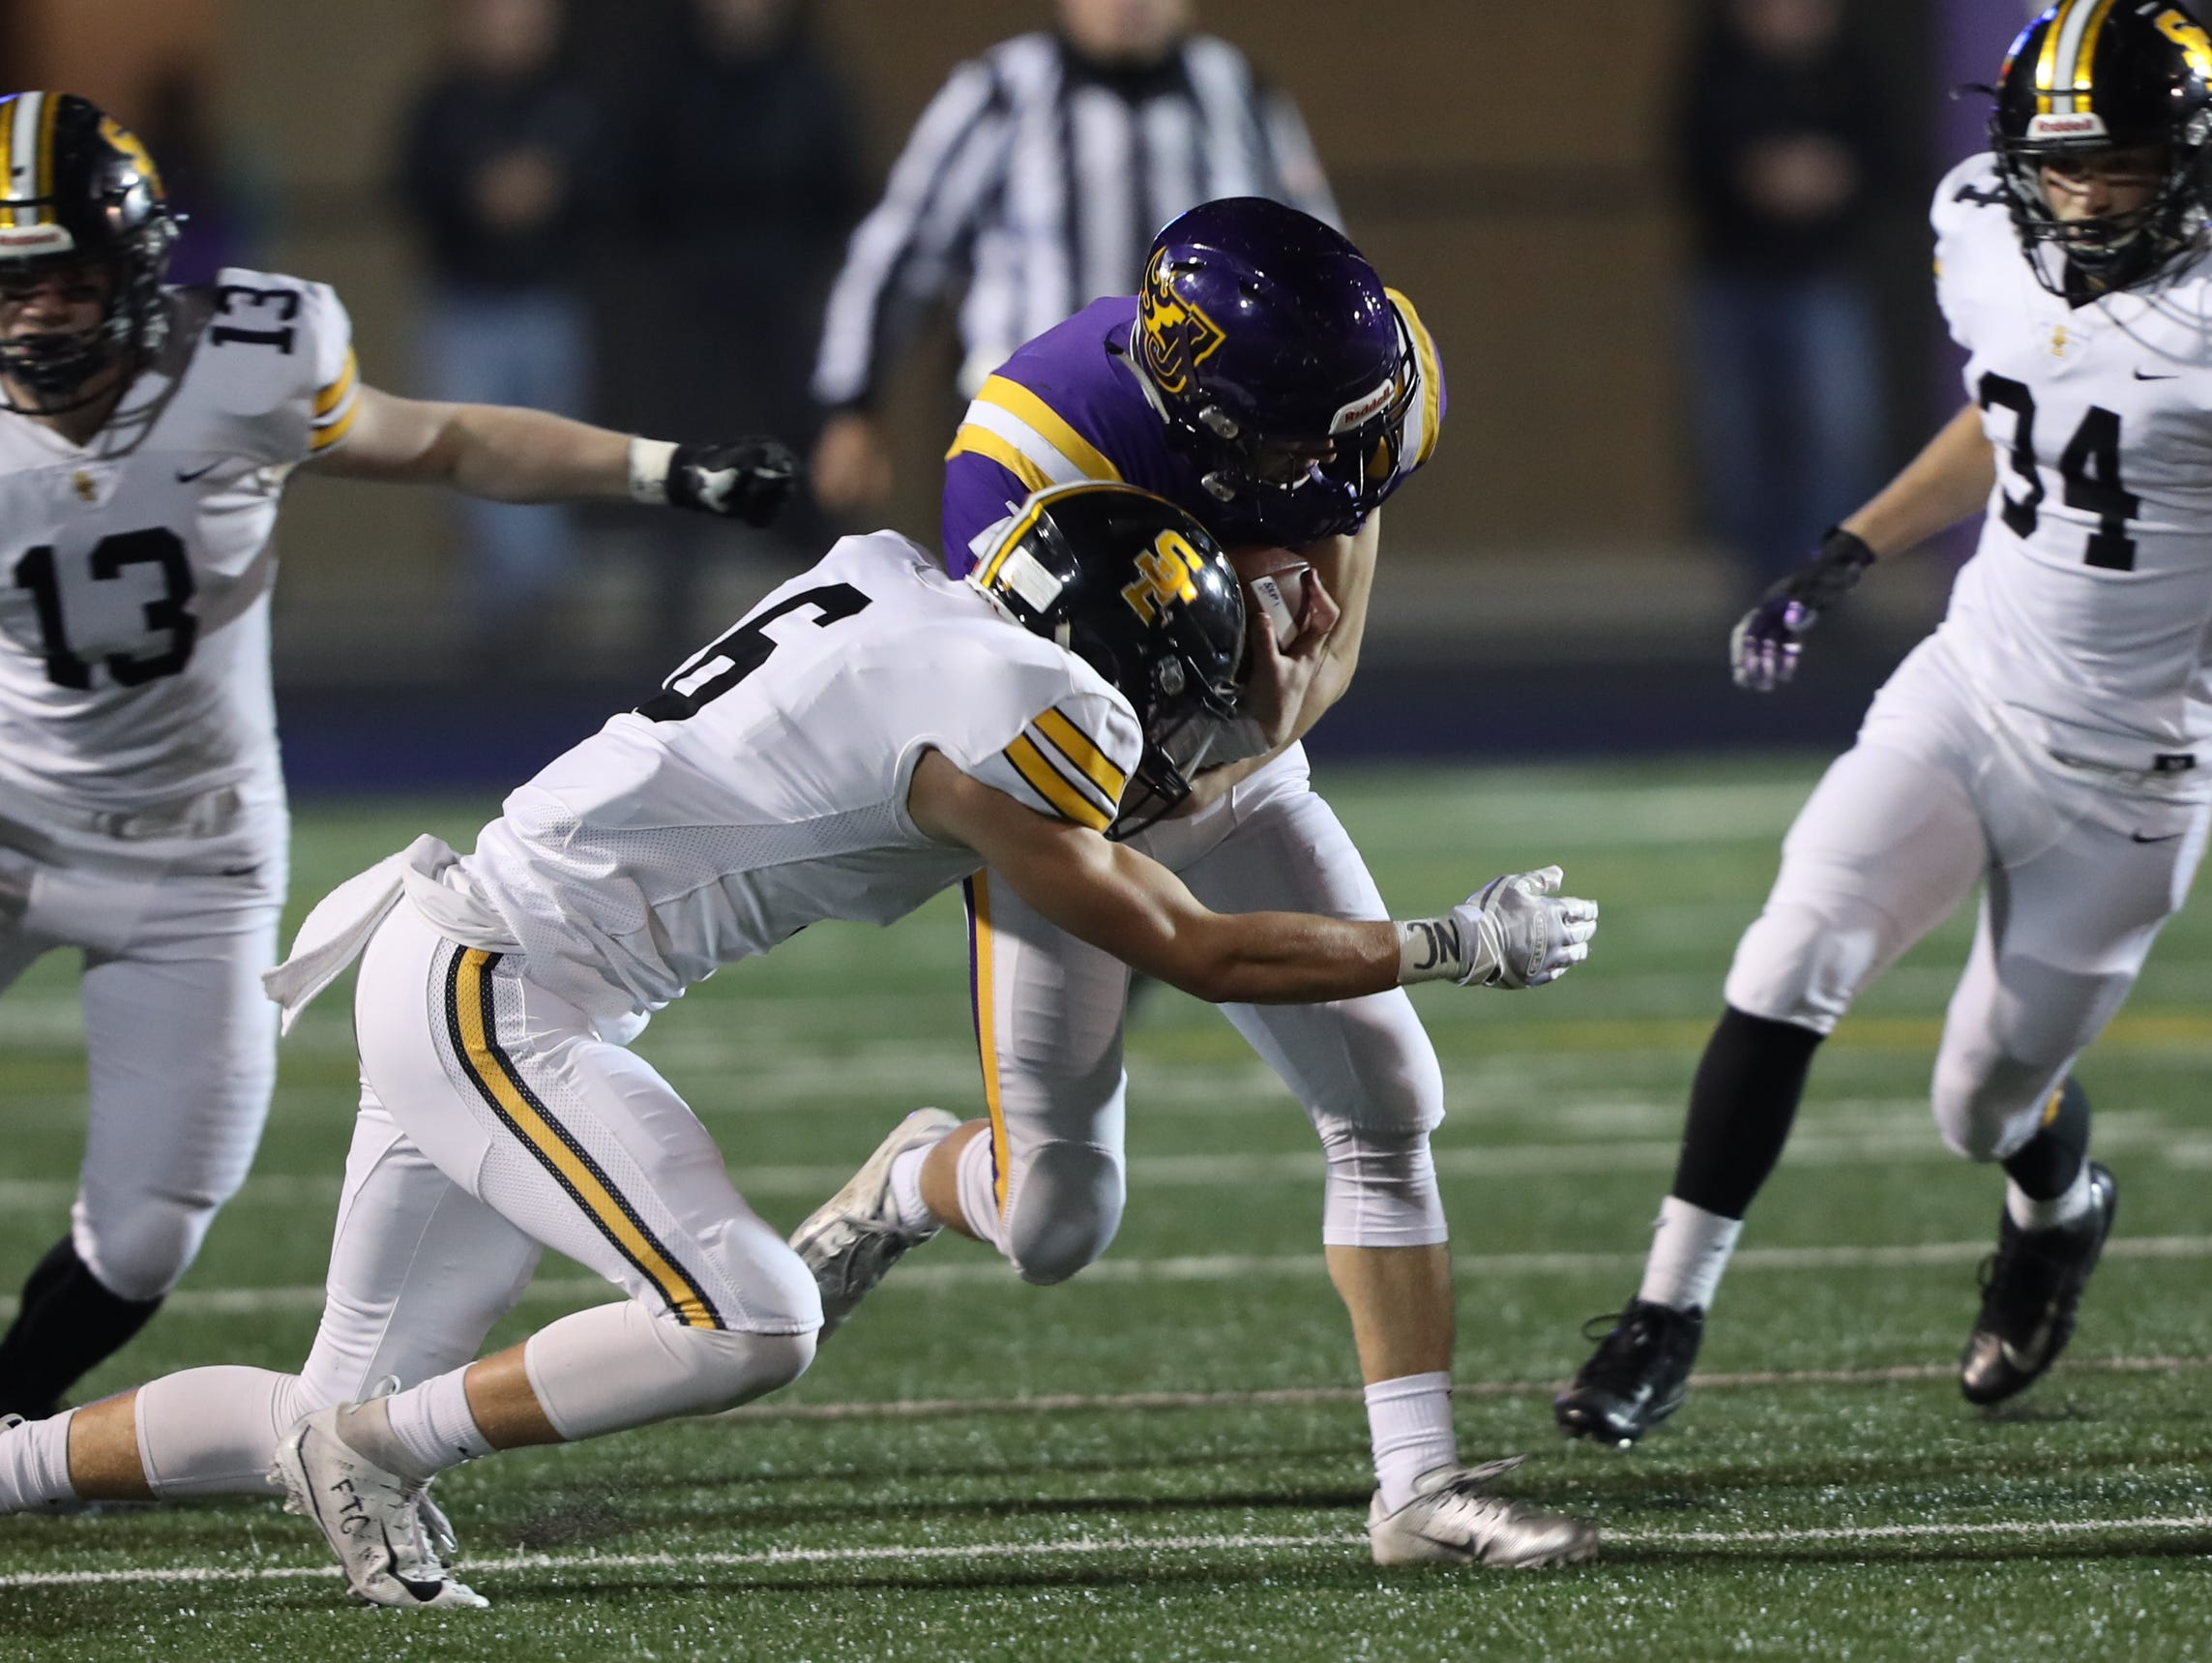 Nov 2, 2018; Johnston, IA, USA; Southeast Polk Rams Dylan Travis (6) makes the tackle against the Johnston Dragons at Johnston Stadium. The Rams beat the Dragons 21-7.